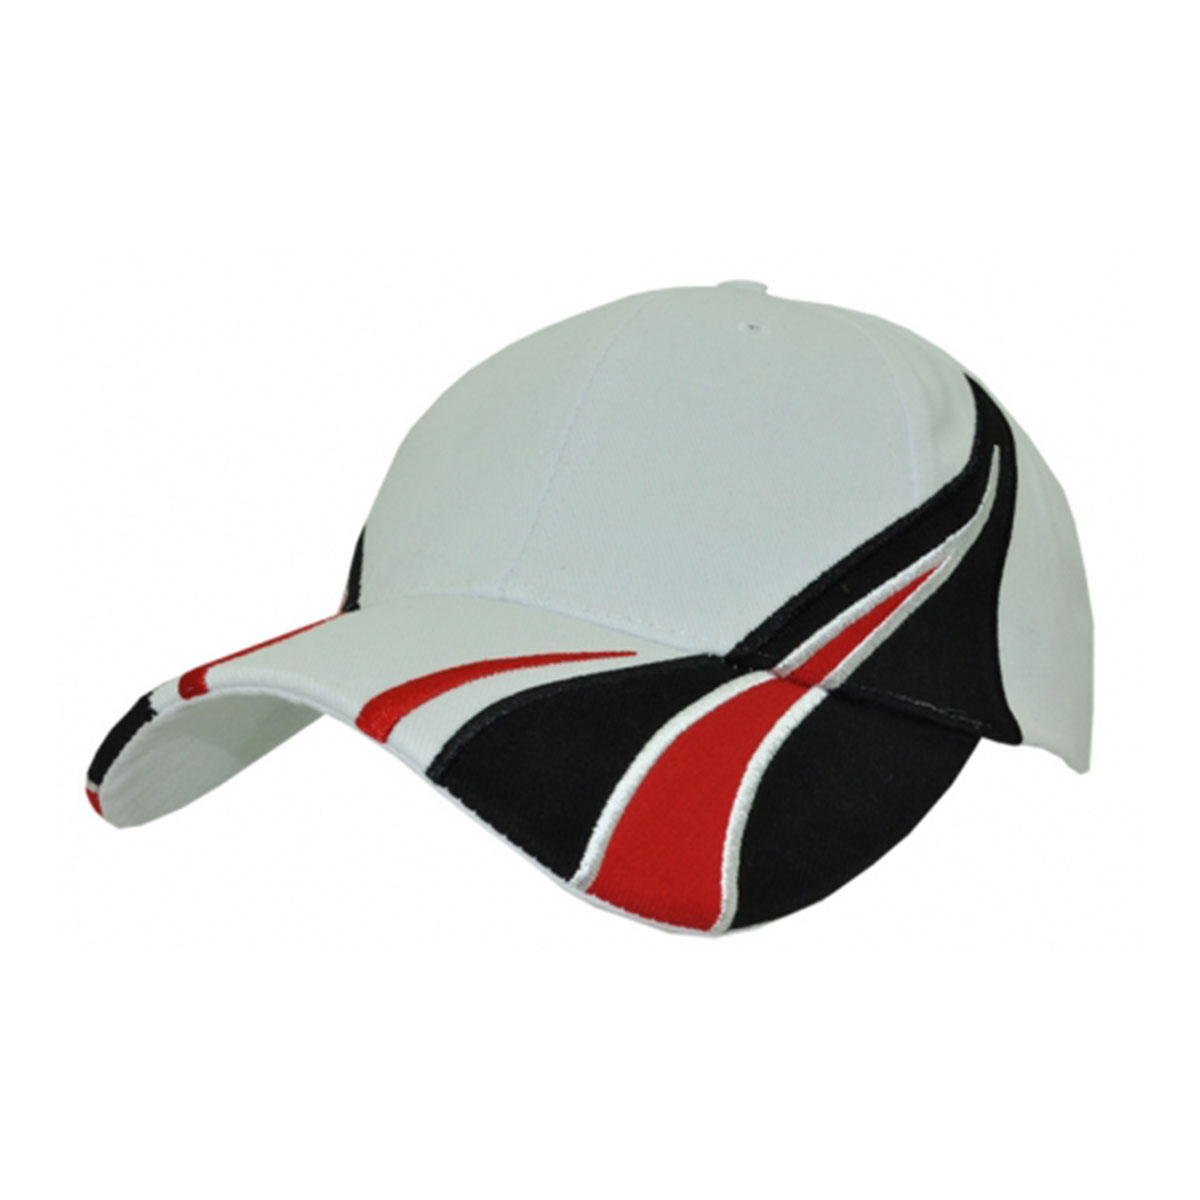 Viper Cap-White / Red / Black